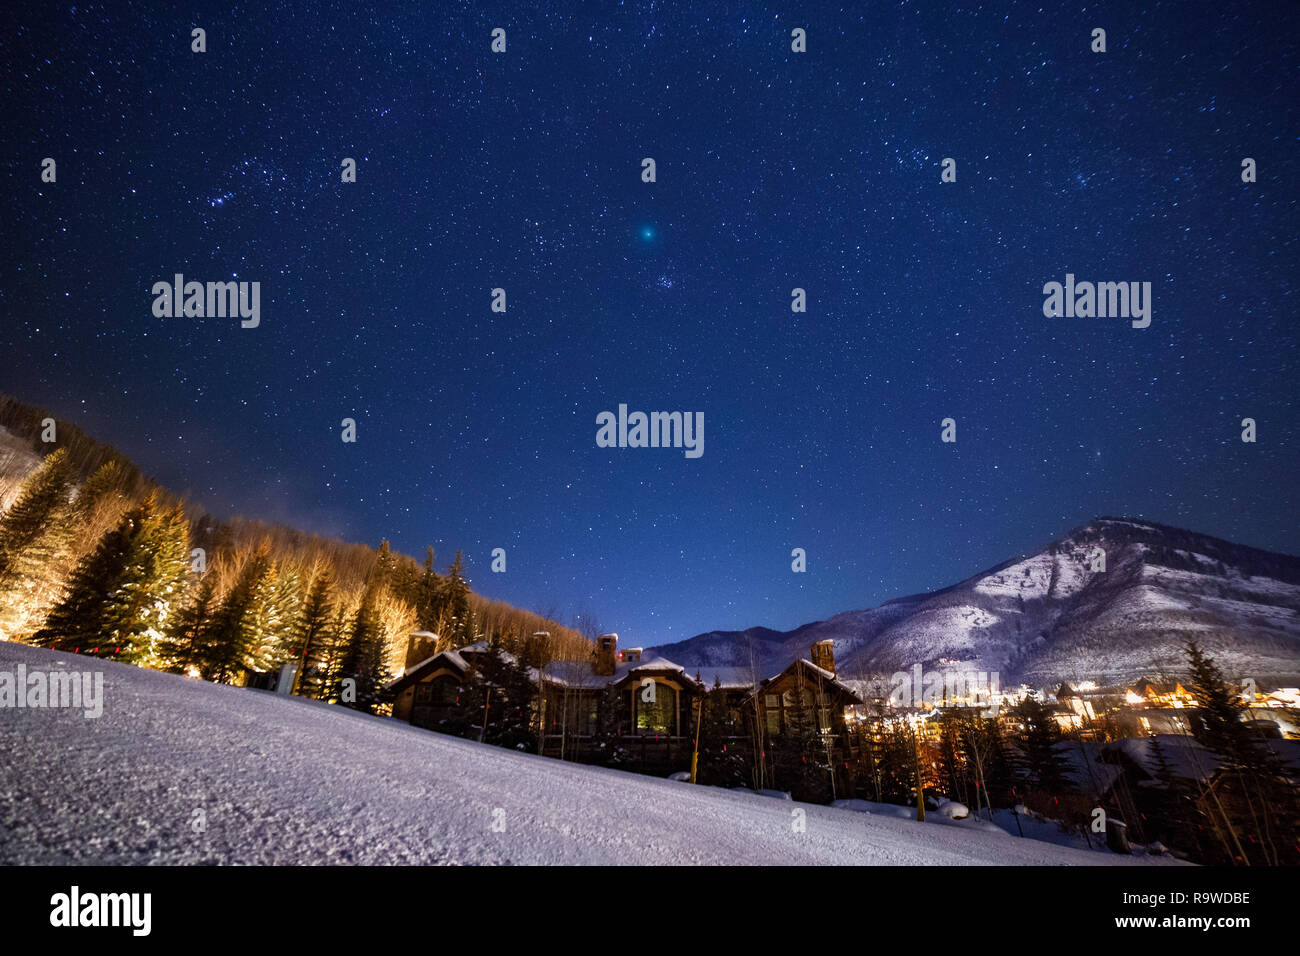 Comet 46P Wirtanen over Vail, Colorado as it made its closest pass to earth on December 16th, 2018. - Stock Image